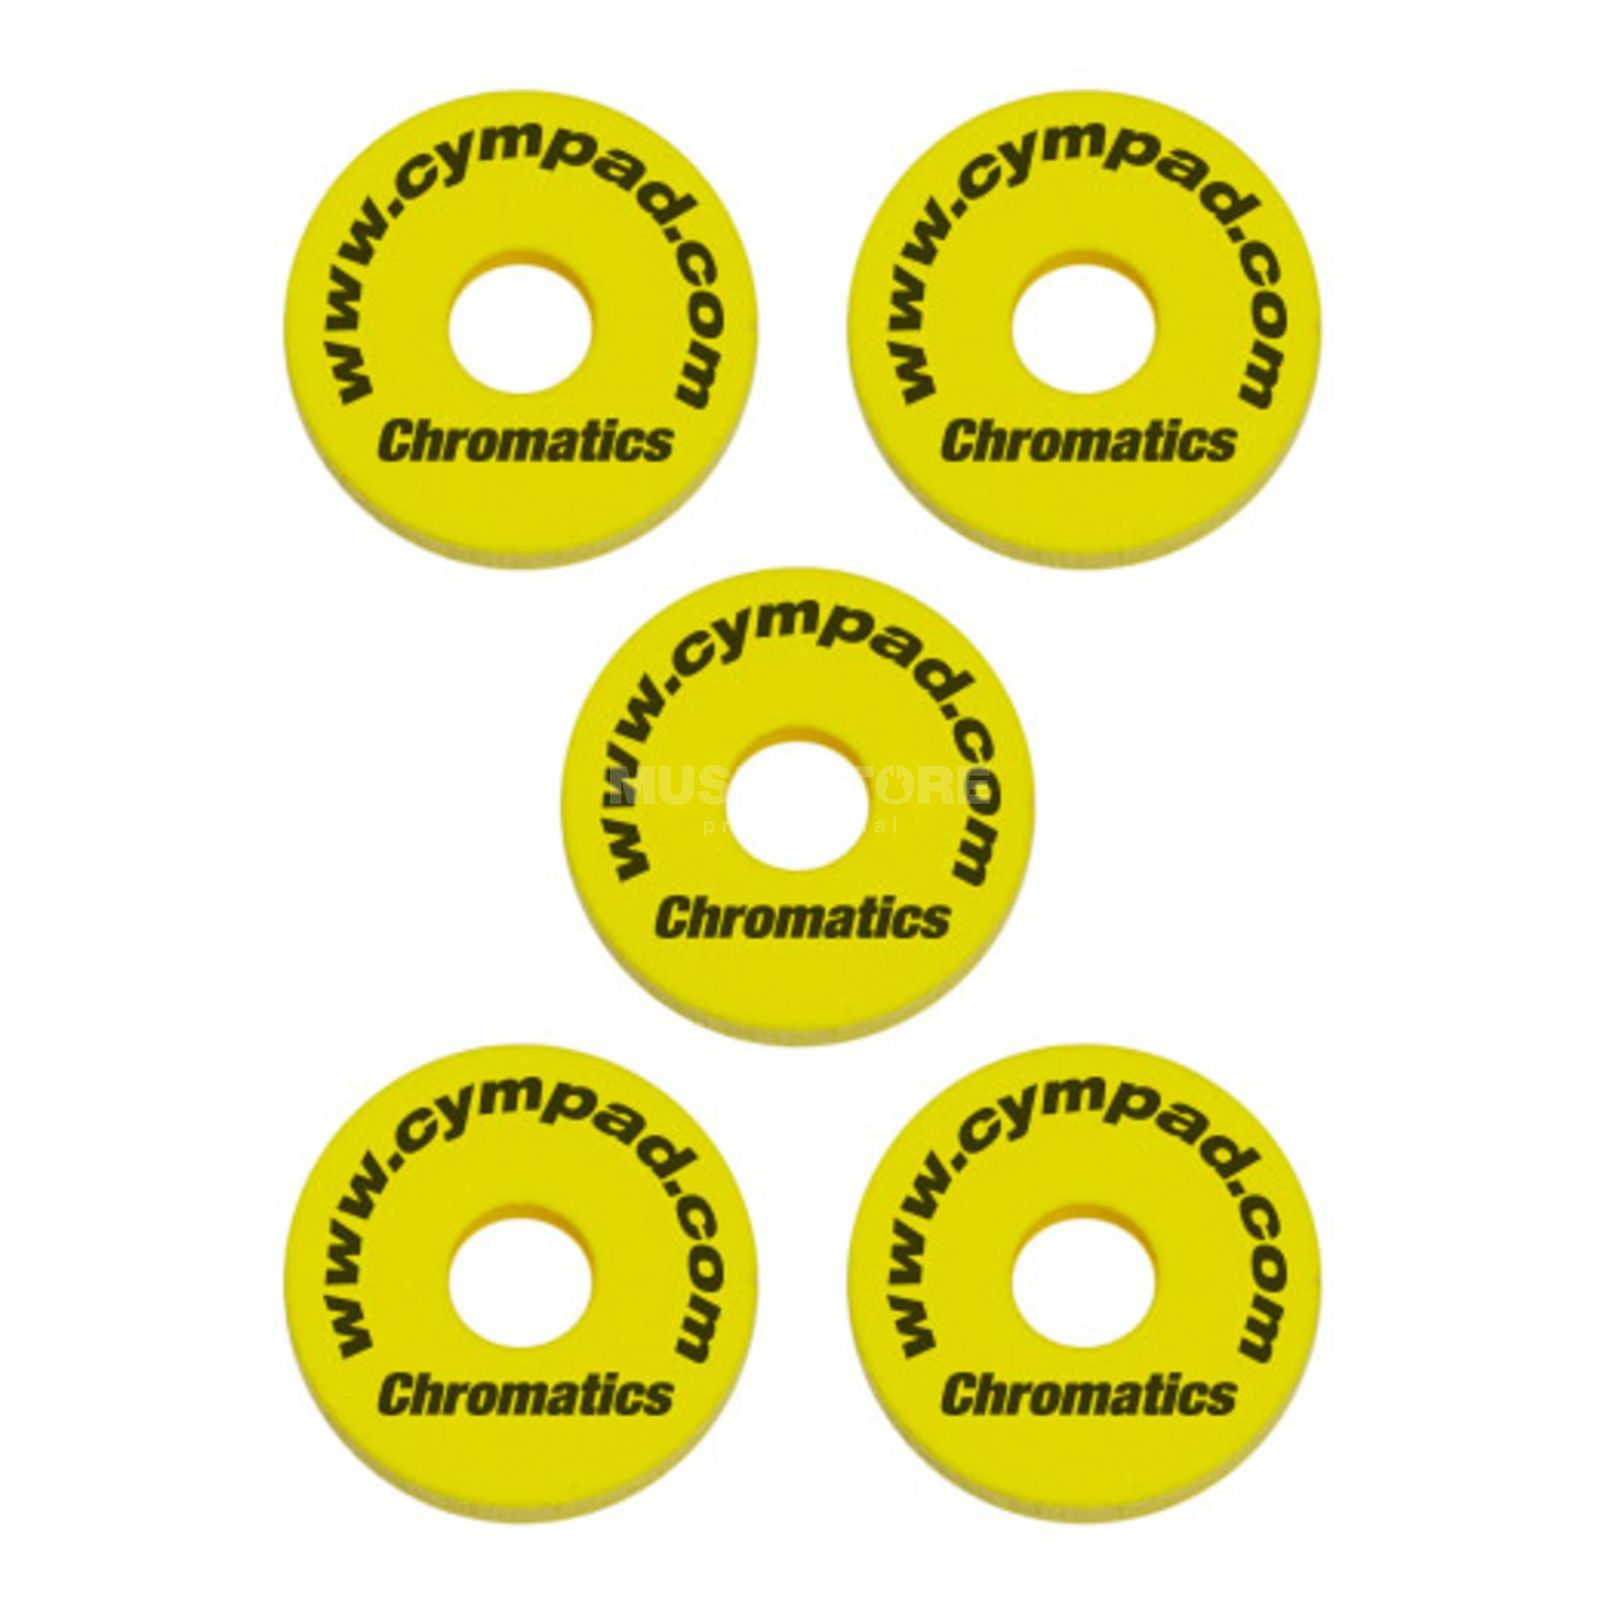 "Cympad Beckenfilze ""Chromatics"", Yellow, 40x15 mm Produktbild"